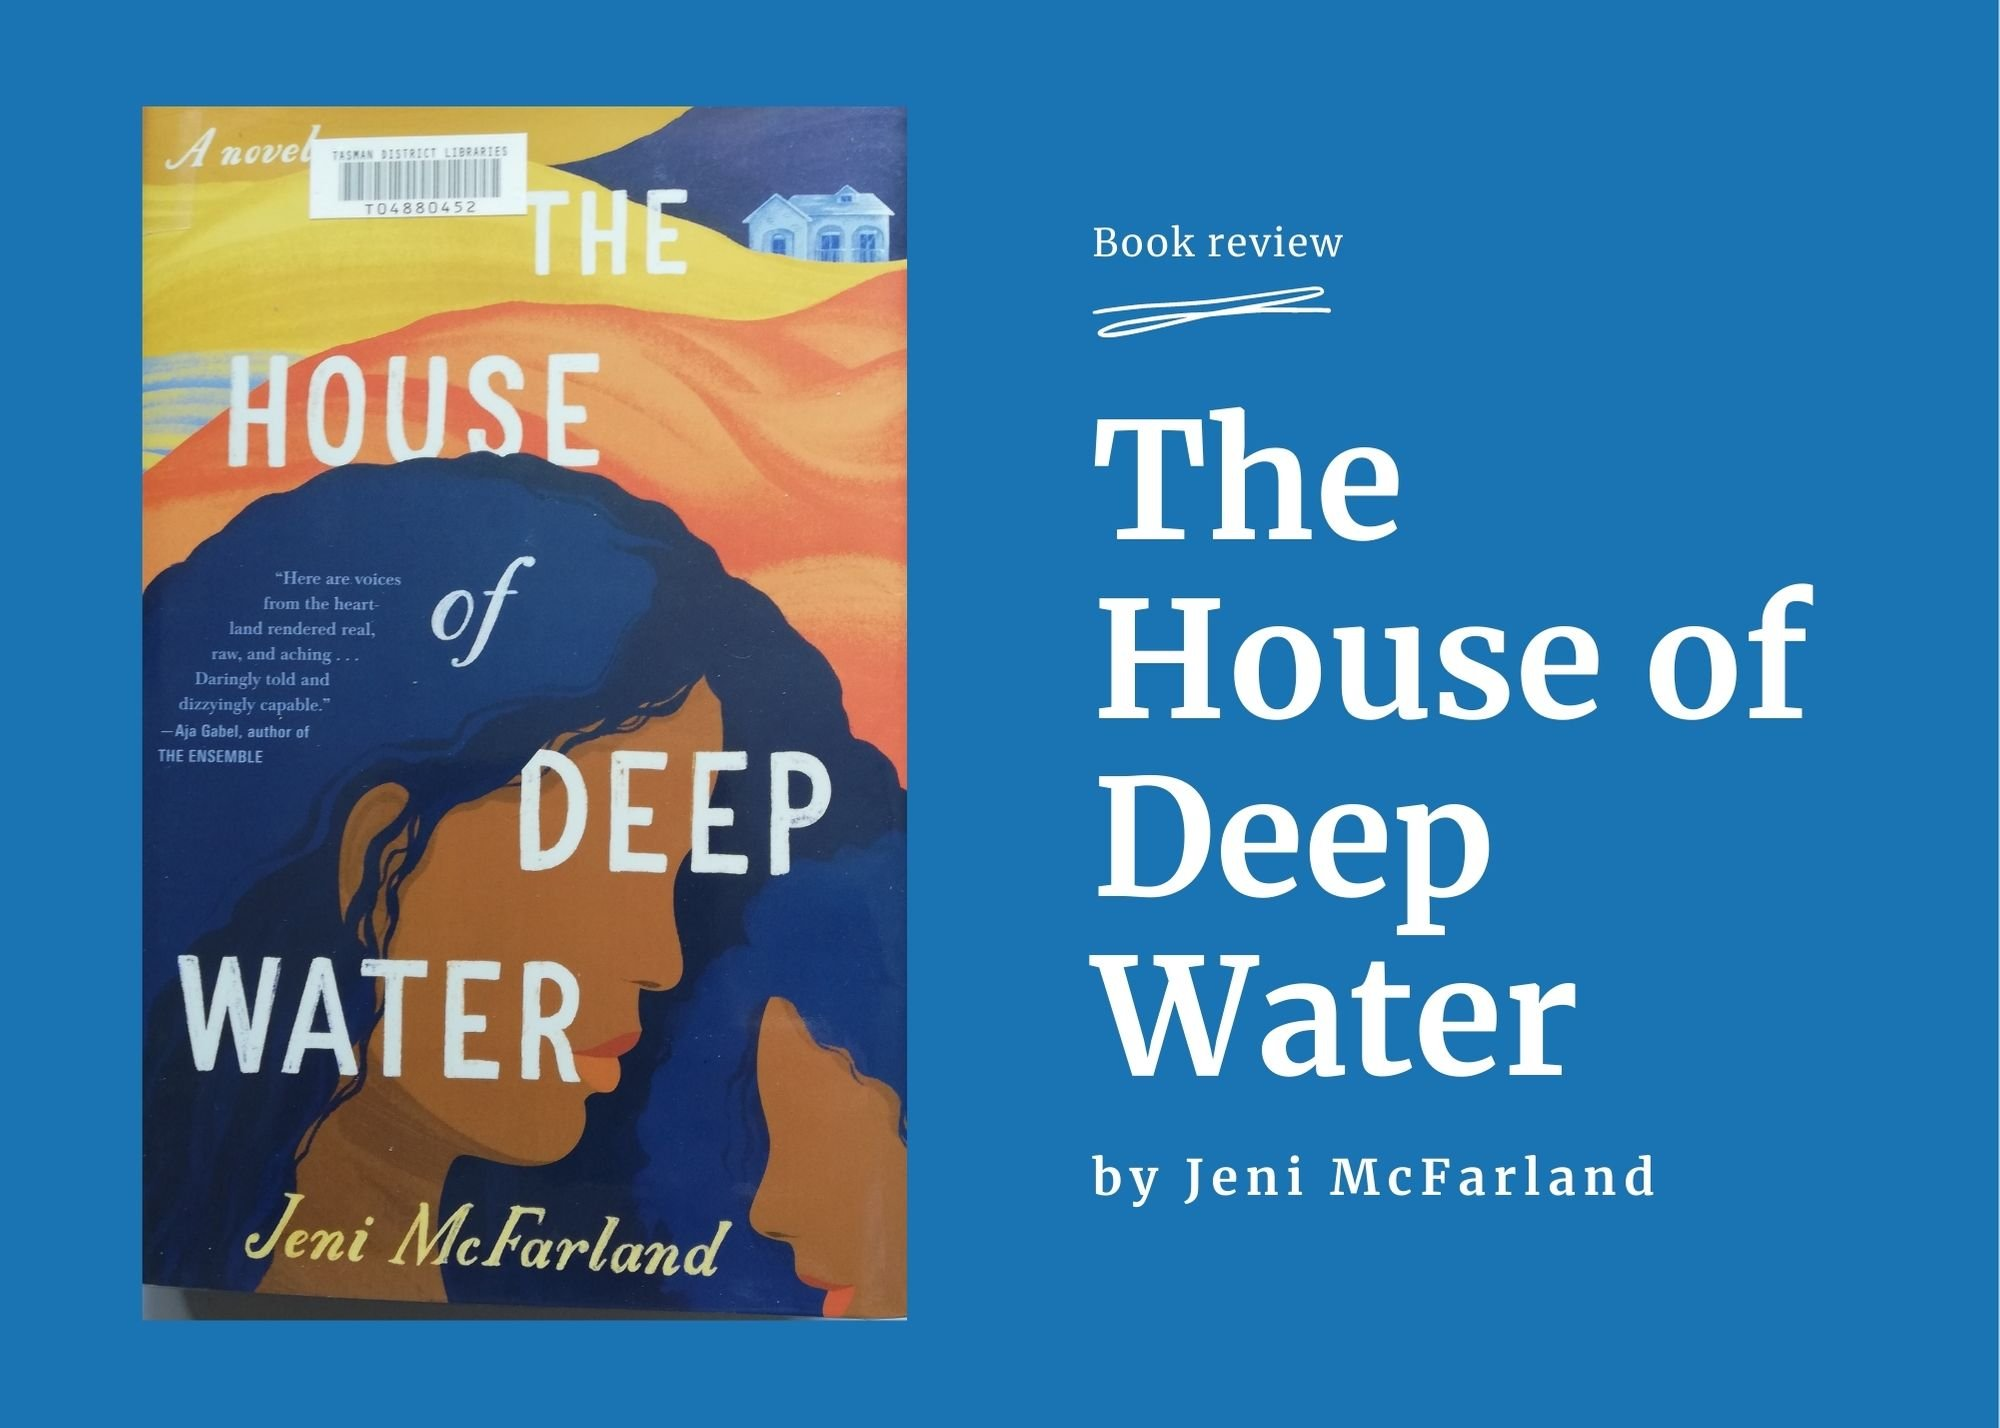 The House of Deep Water, by Jeni McFarland